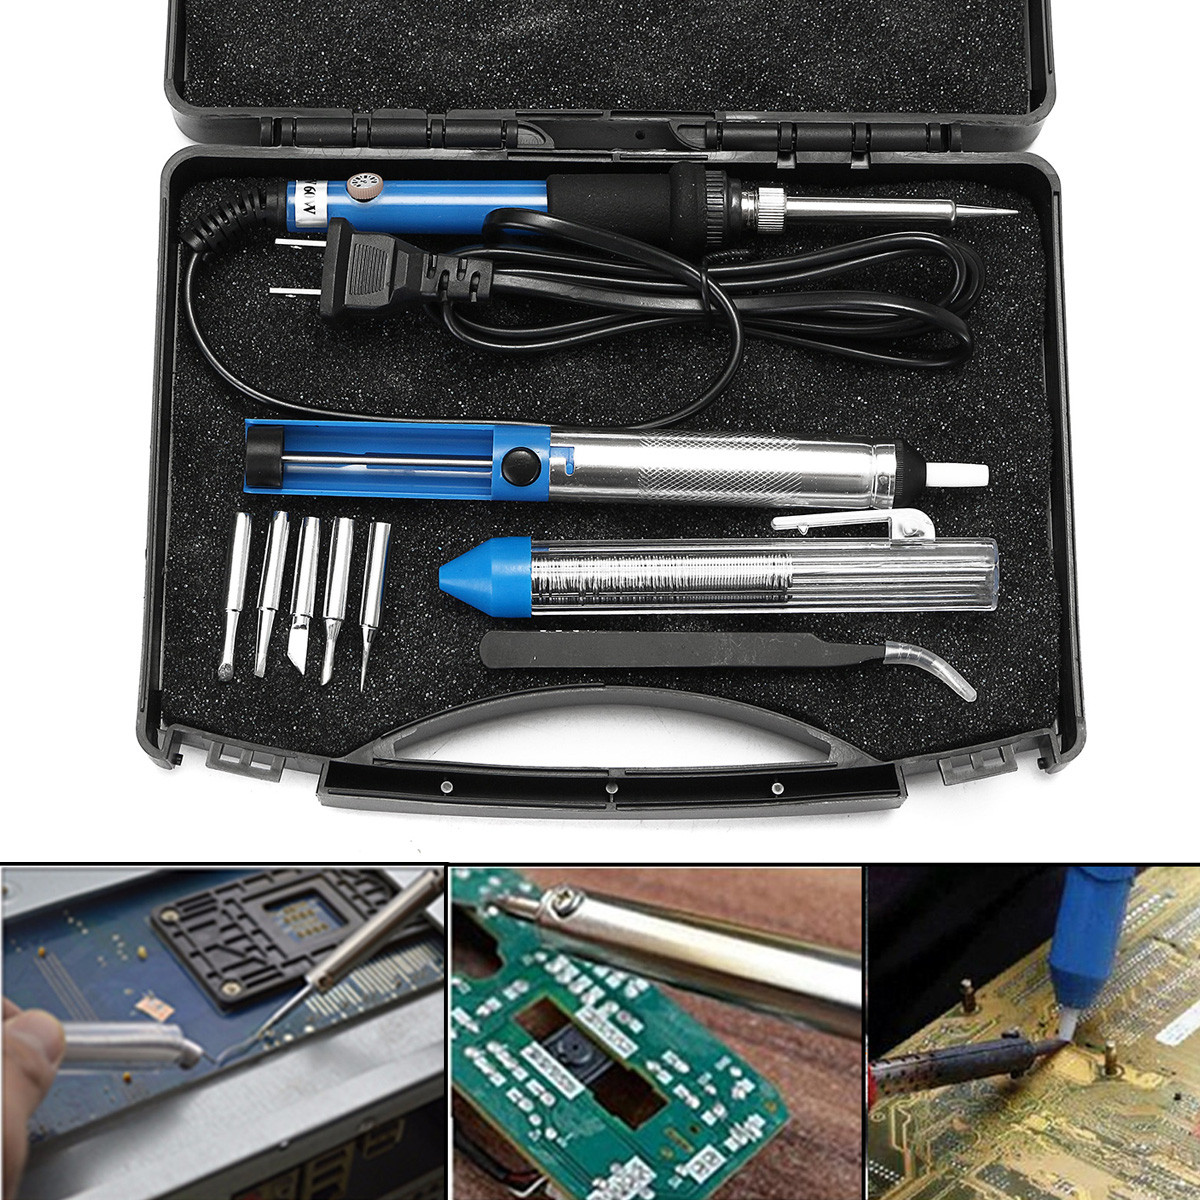 60W 110V Electric Soldering Iron Kit Adjustable Temperature Welding Starter Tool with 5 Tips +Carry Case